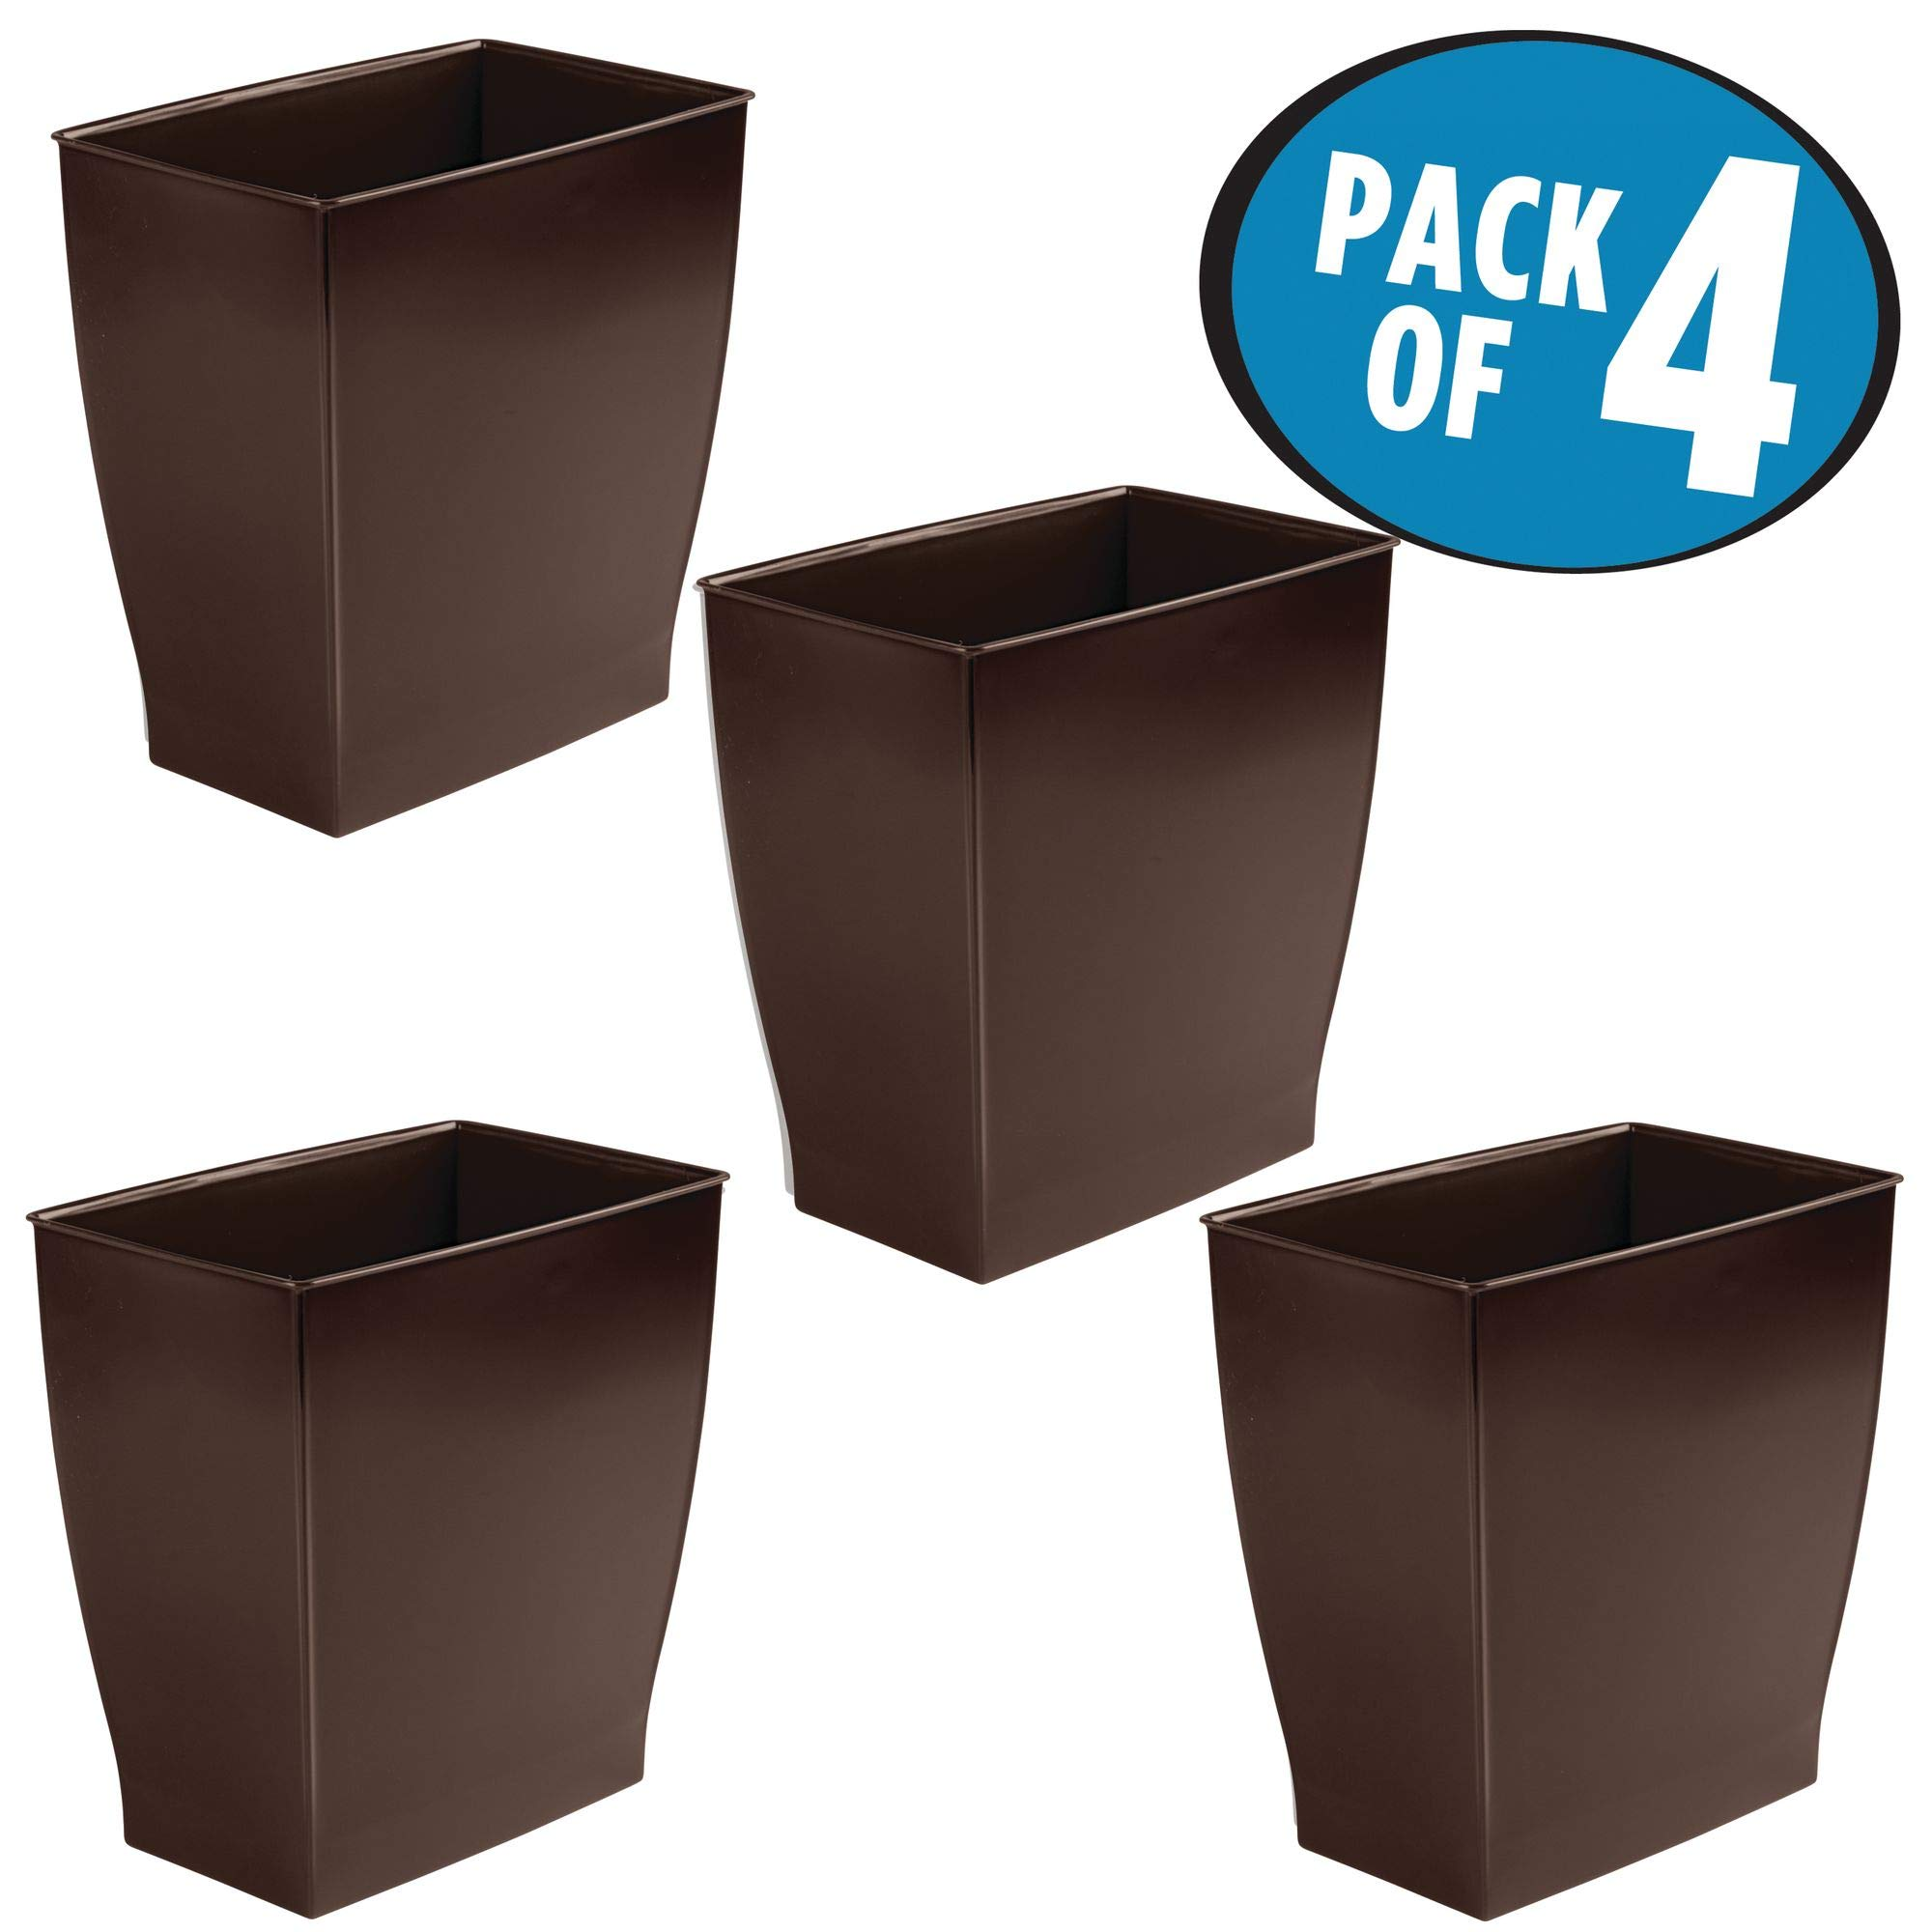 mDesign Rectangular Trash Can Wastebasket, Small Garbage Container Bin for Bathrooms, Powder Rooms, Kitchens, Home Offices - Pack of 4, Shatter-Resistant Plastic, Dark Brown